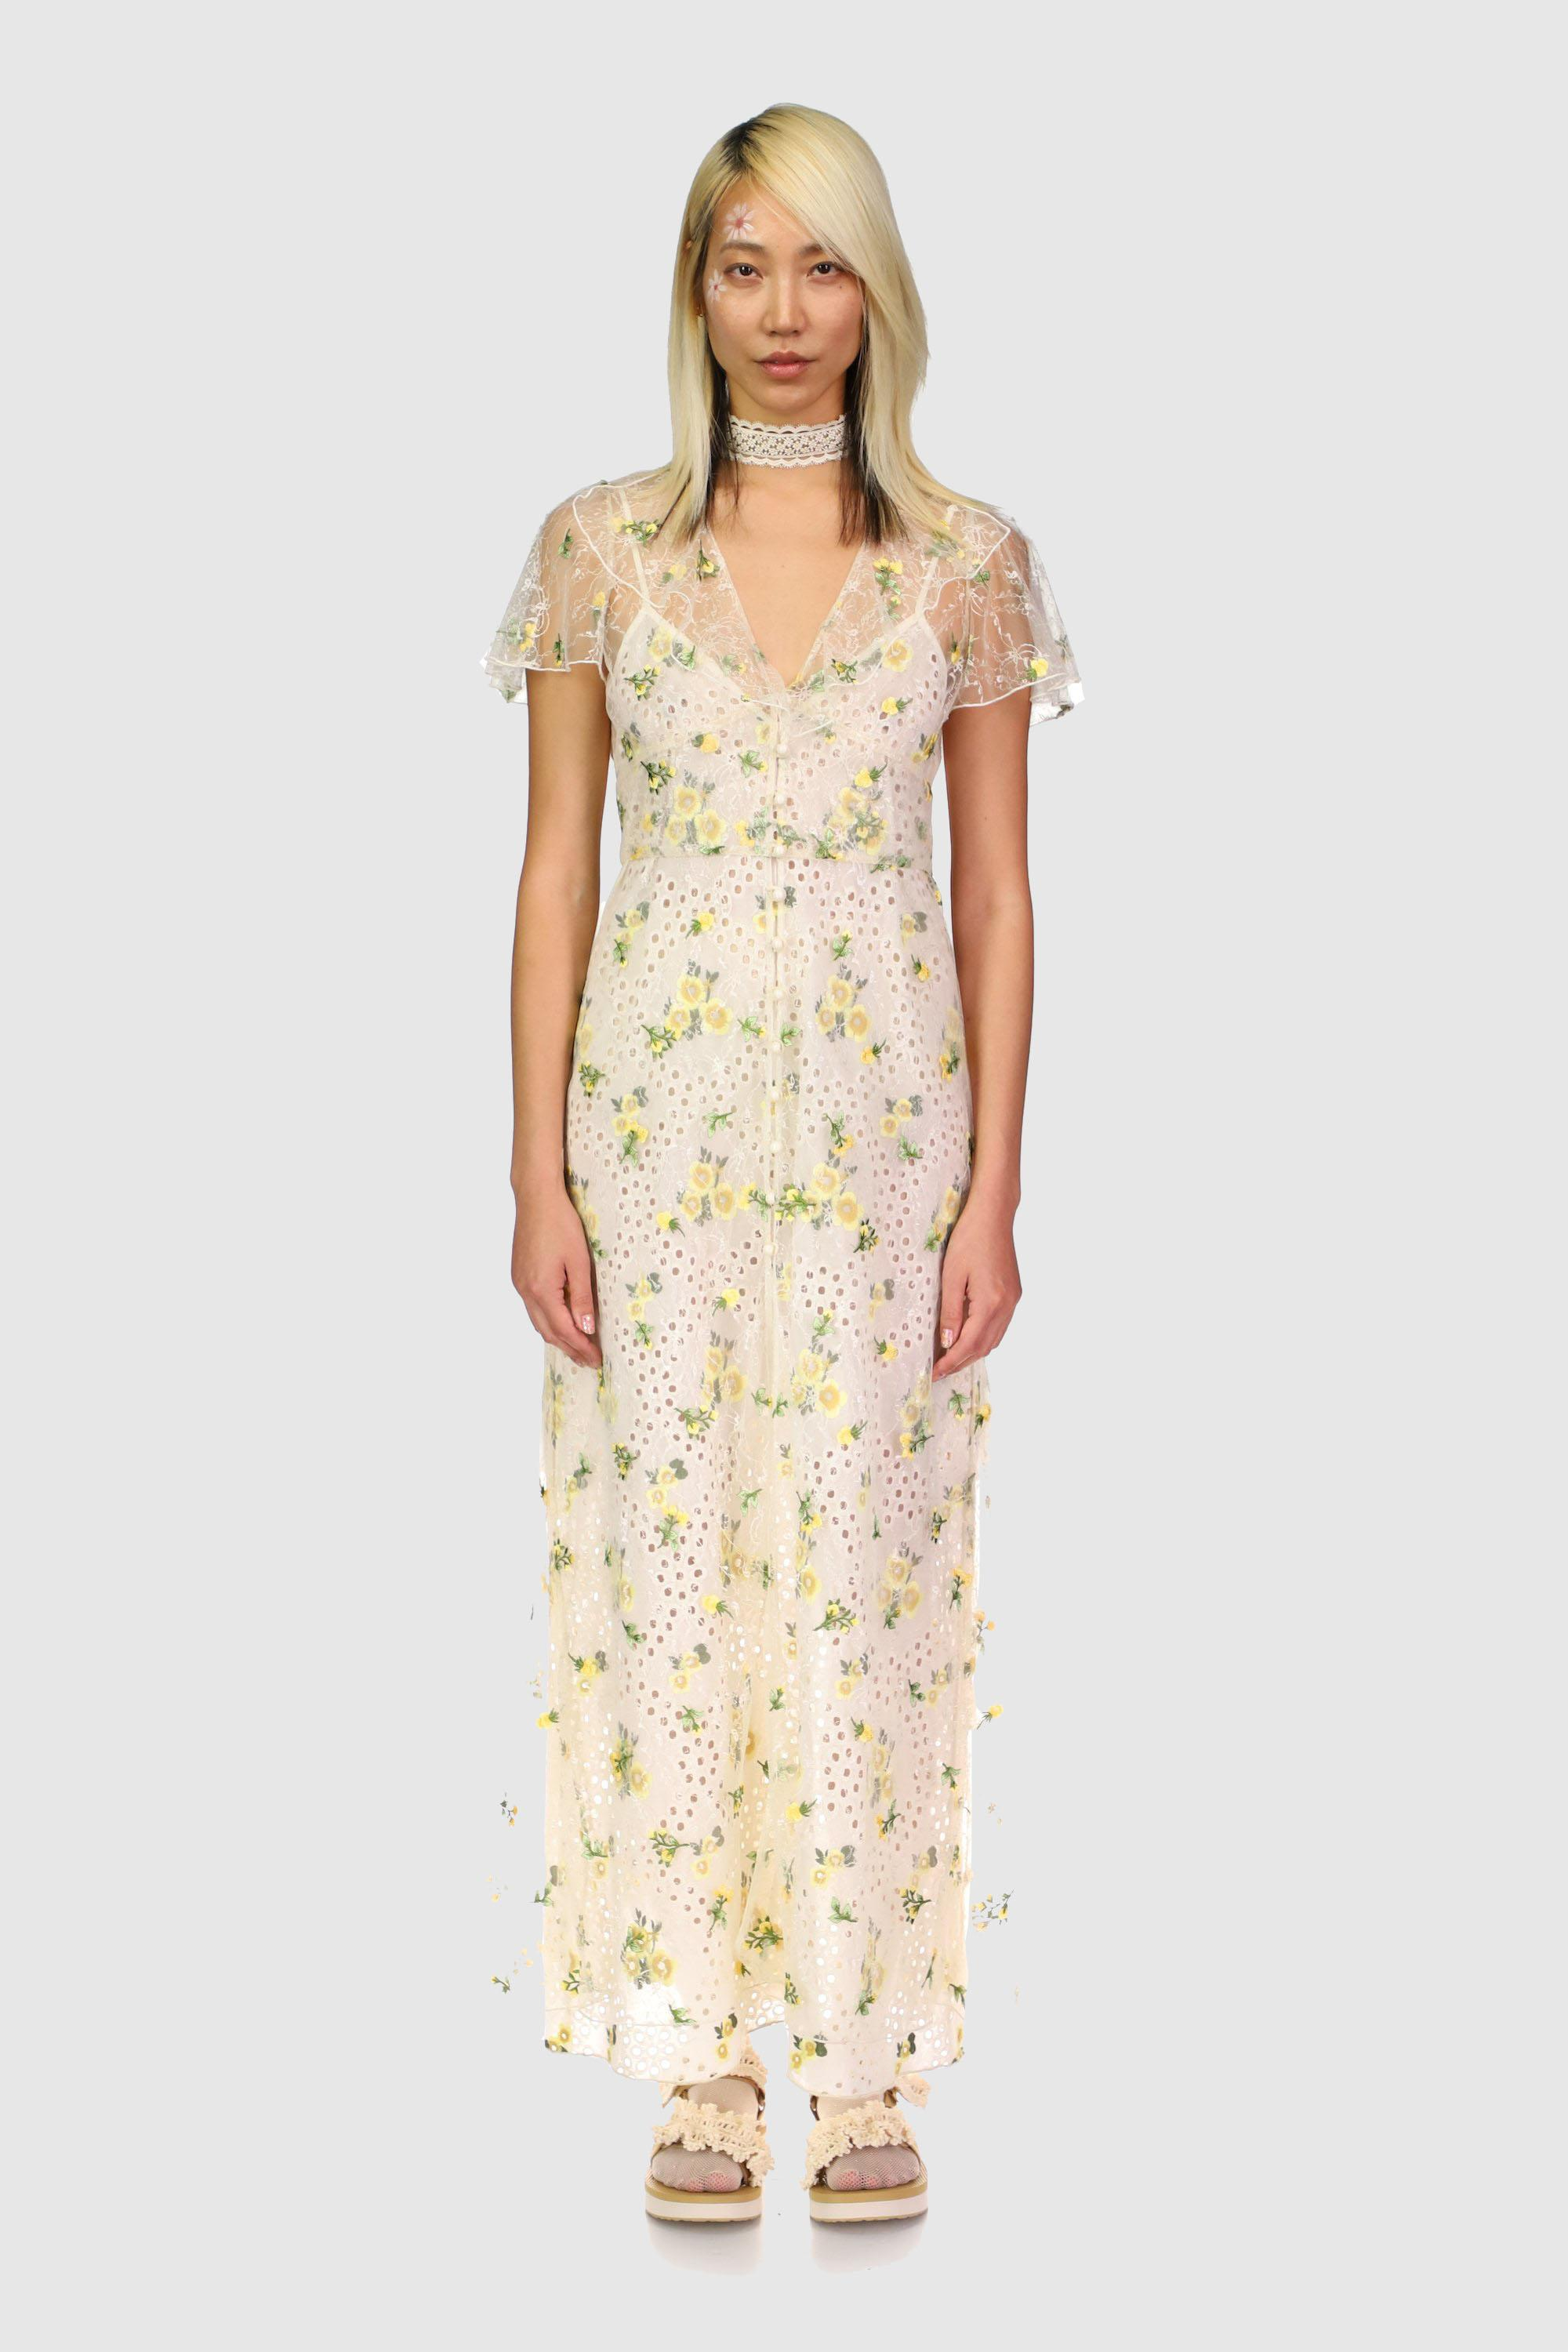 Scattered Blooms Lace Cover Up 0